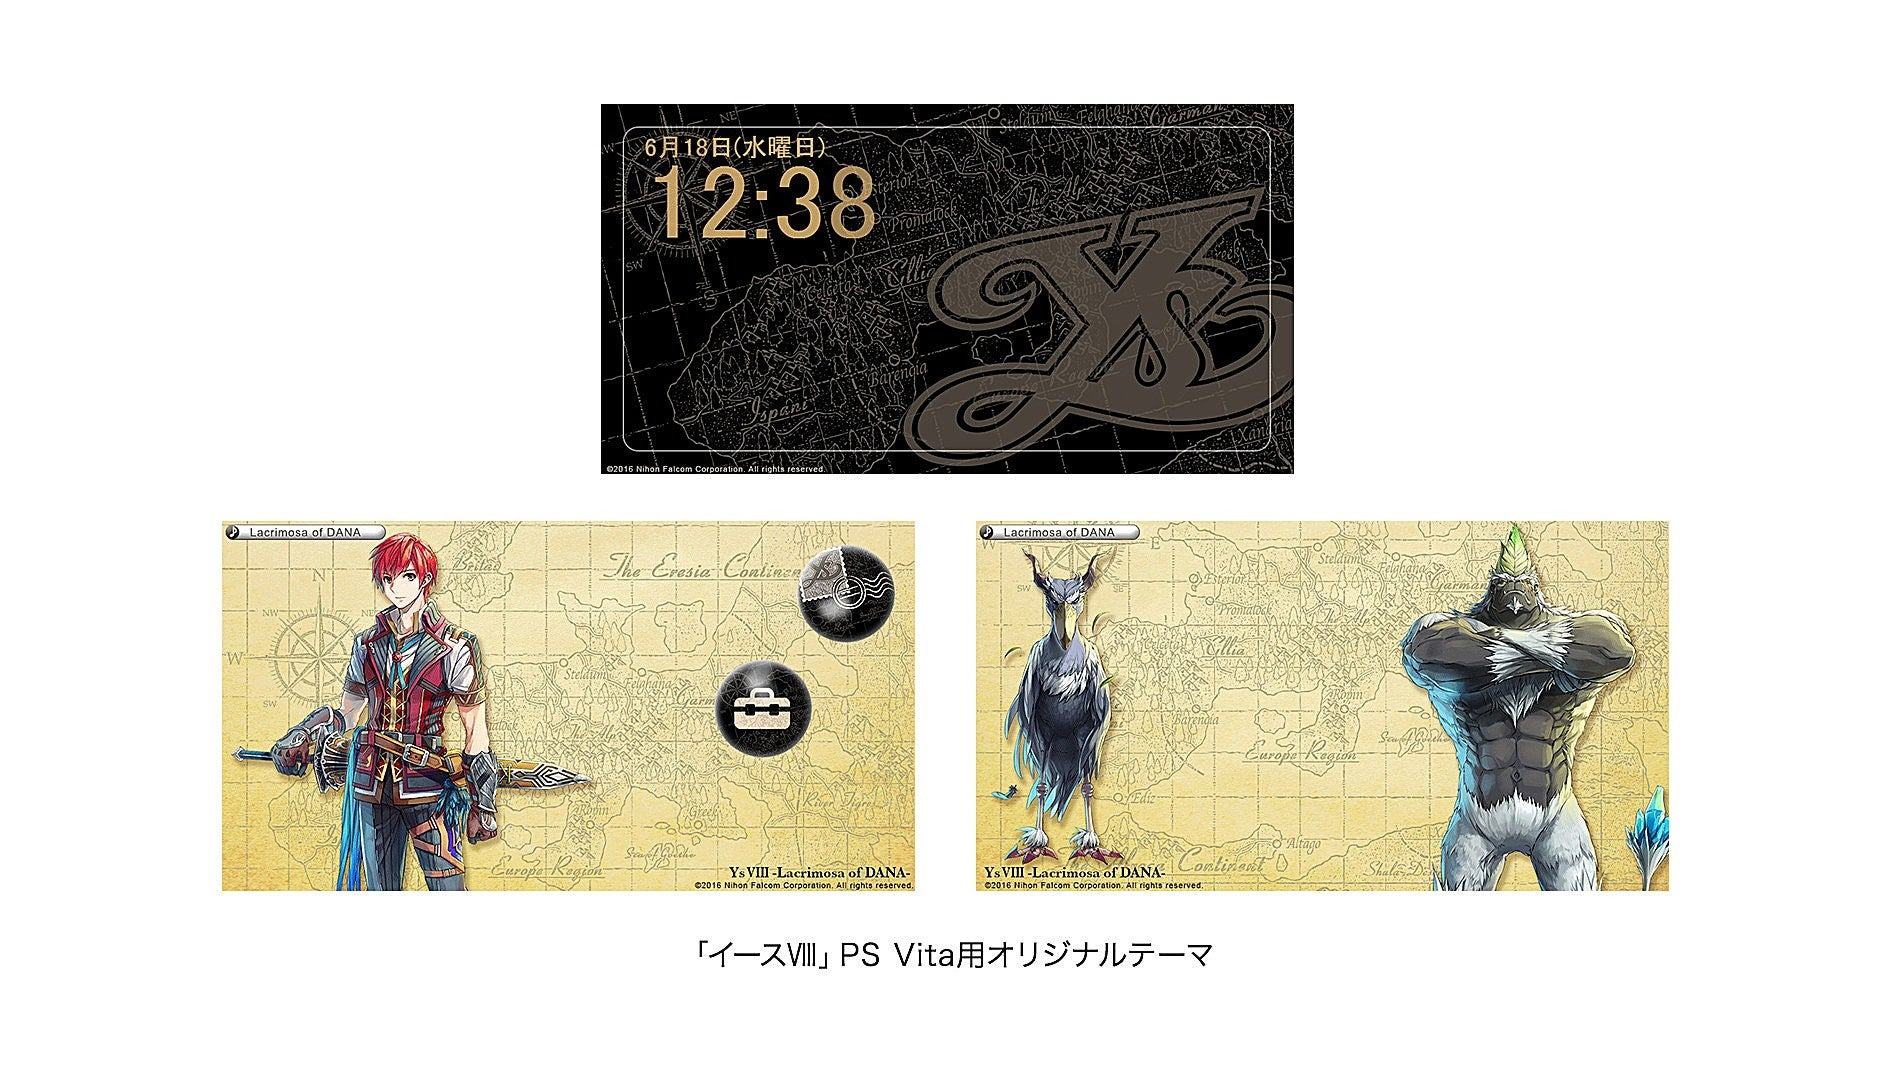 Image 3 for PlayStation Vita Wi-fi Model Ys VIII White Clelia Edition